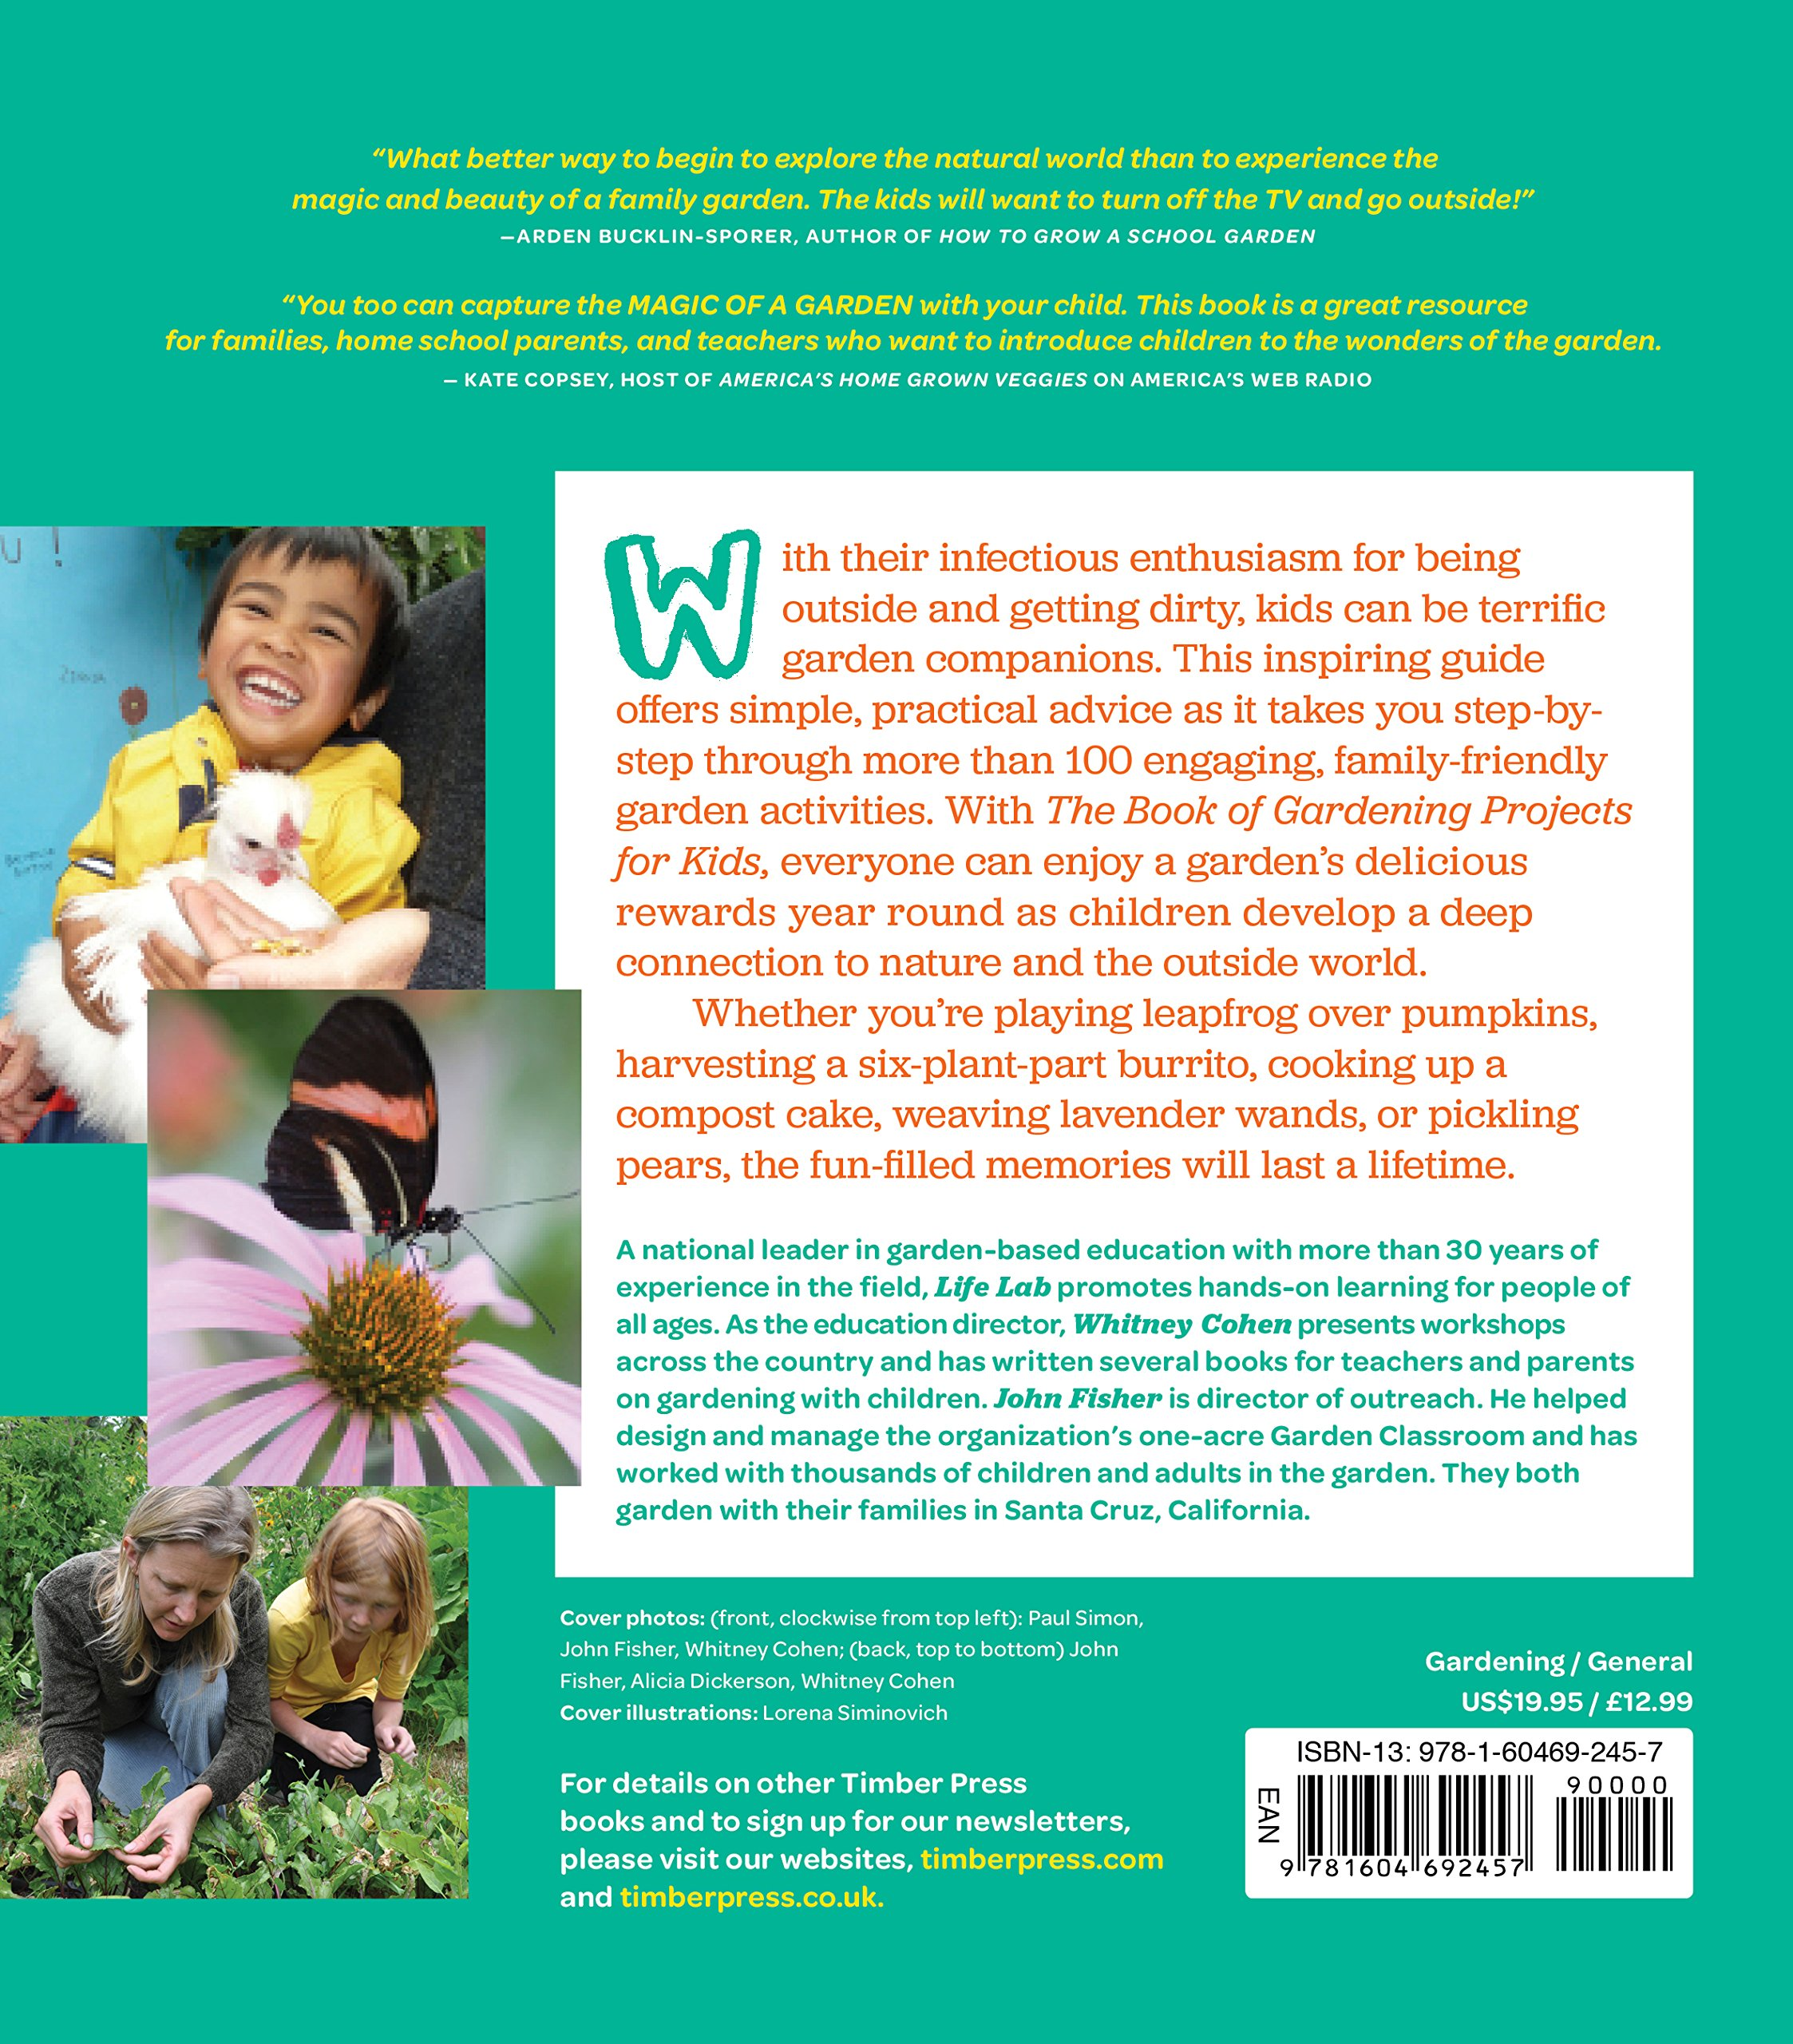 The Book of Gardening Projects for Kids: 101 Ways to Get Kids Outside, Dirty, and Having Fun by Workman Publishing